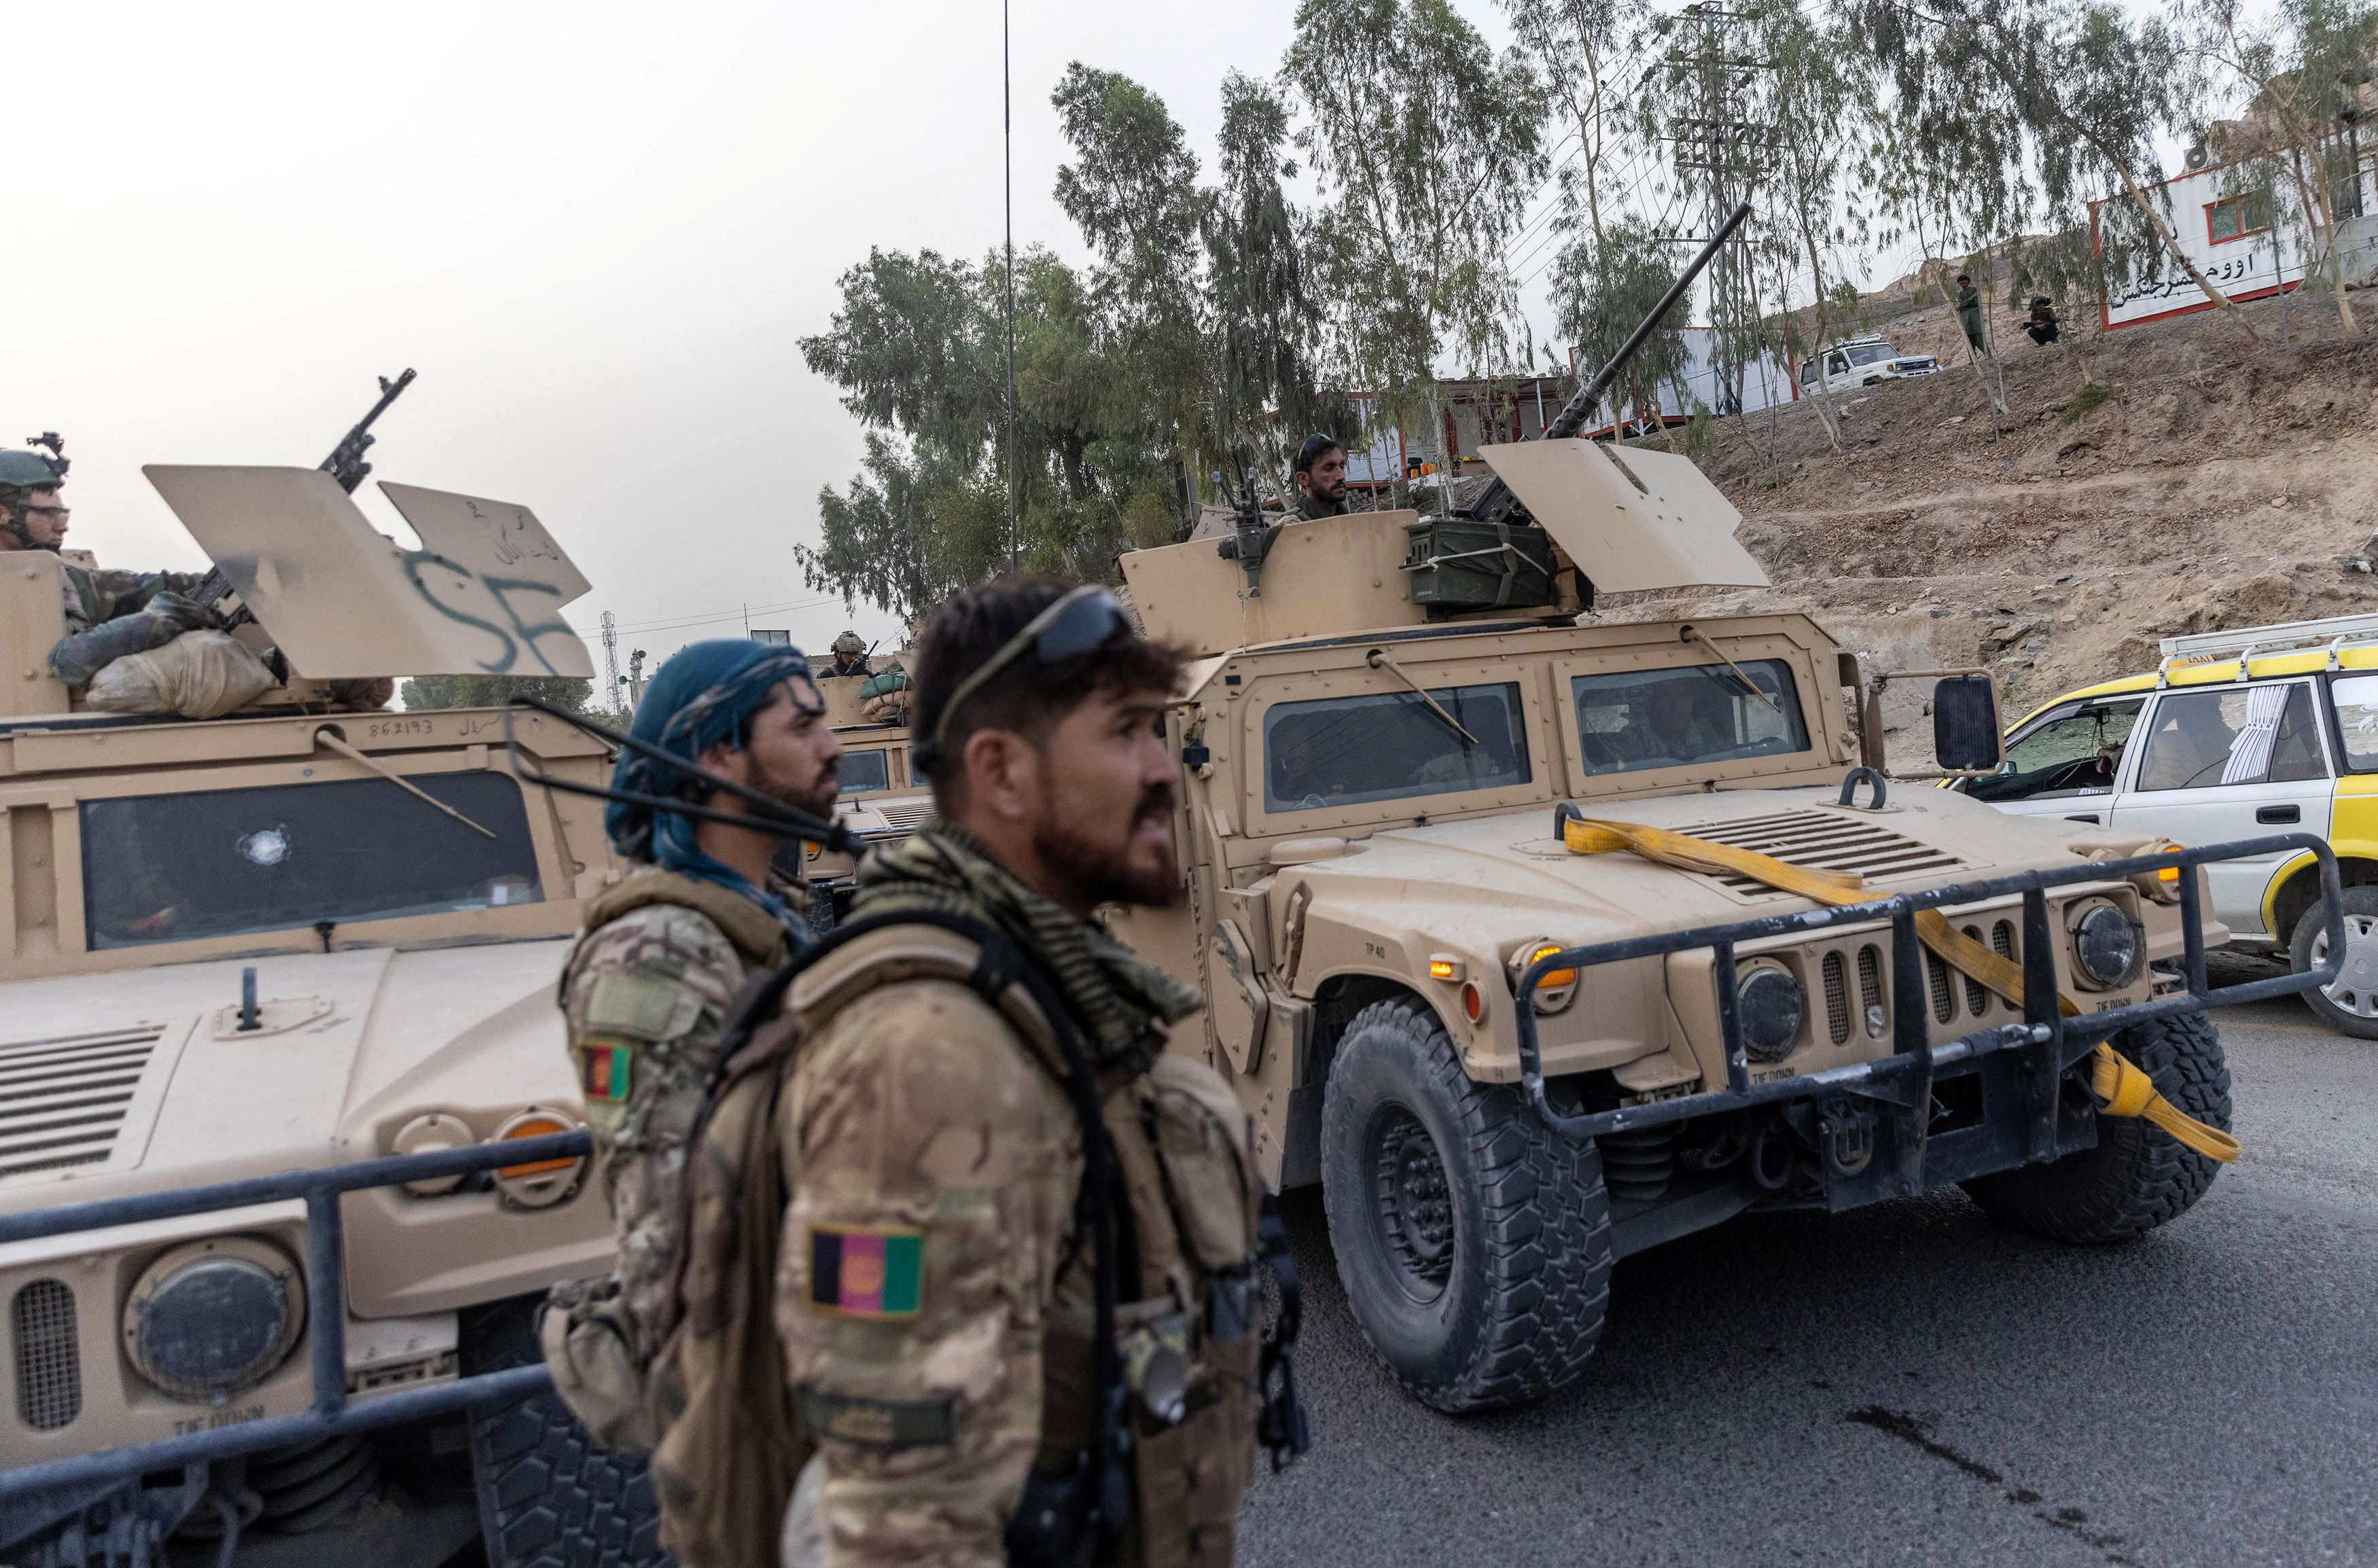 A convoy of Afghan Special Forces is seen during the rescue mission of a policeman besieged at a check post surrounded by Taliban, in Kandahar province, Afghanistan, July 13, 2021. Picture taken July 13, 2021.REUTERS/Danish Siddiqui